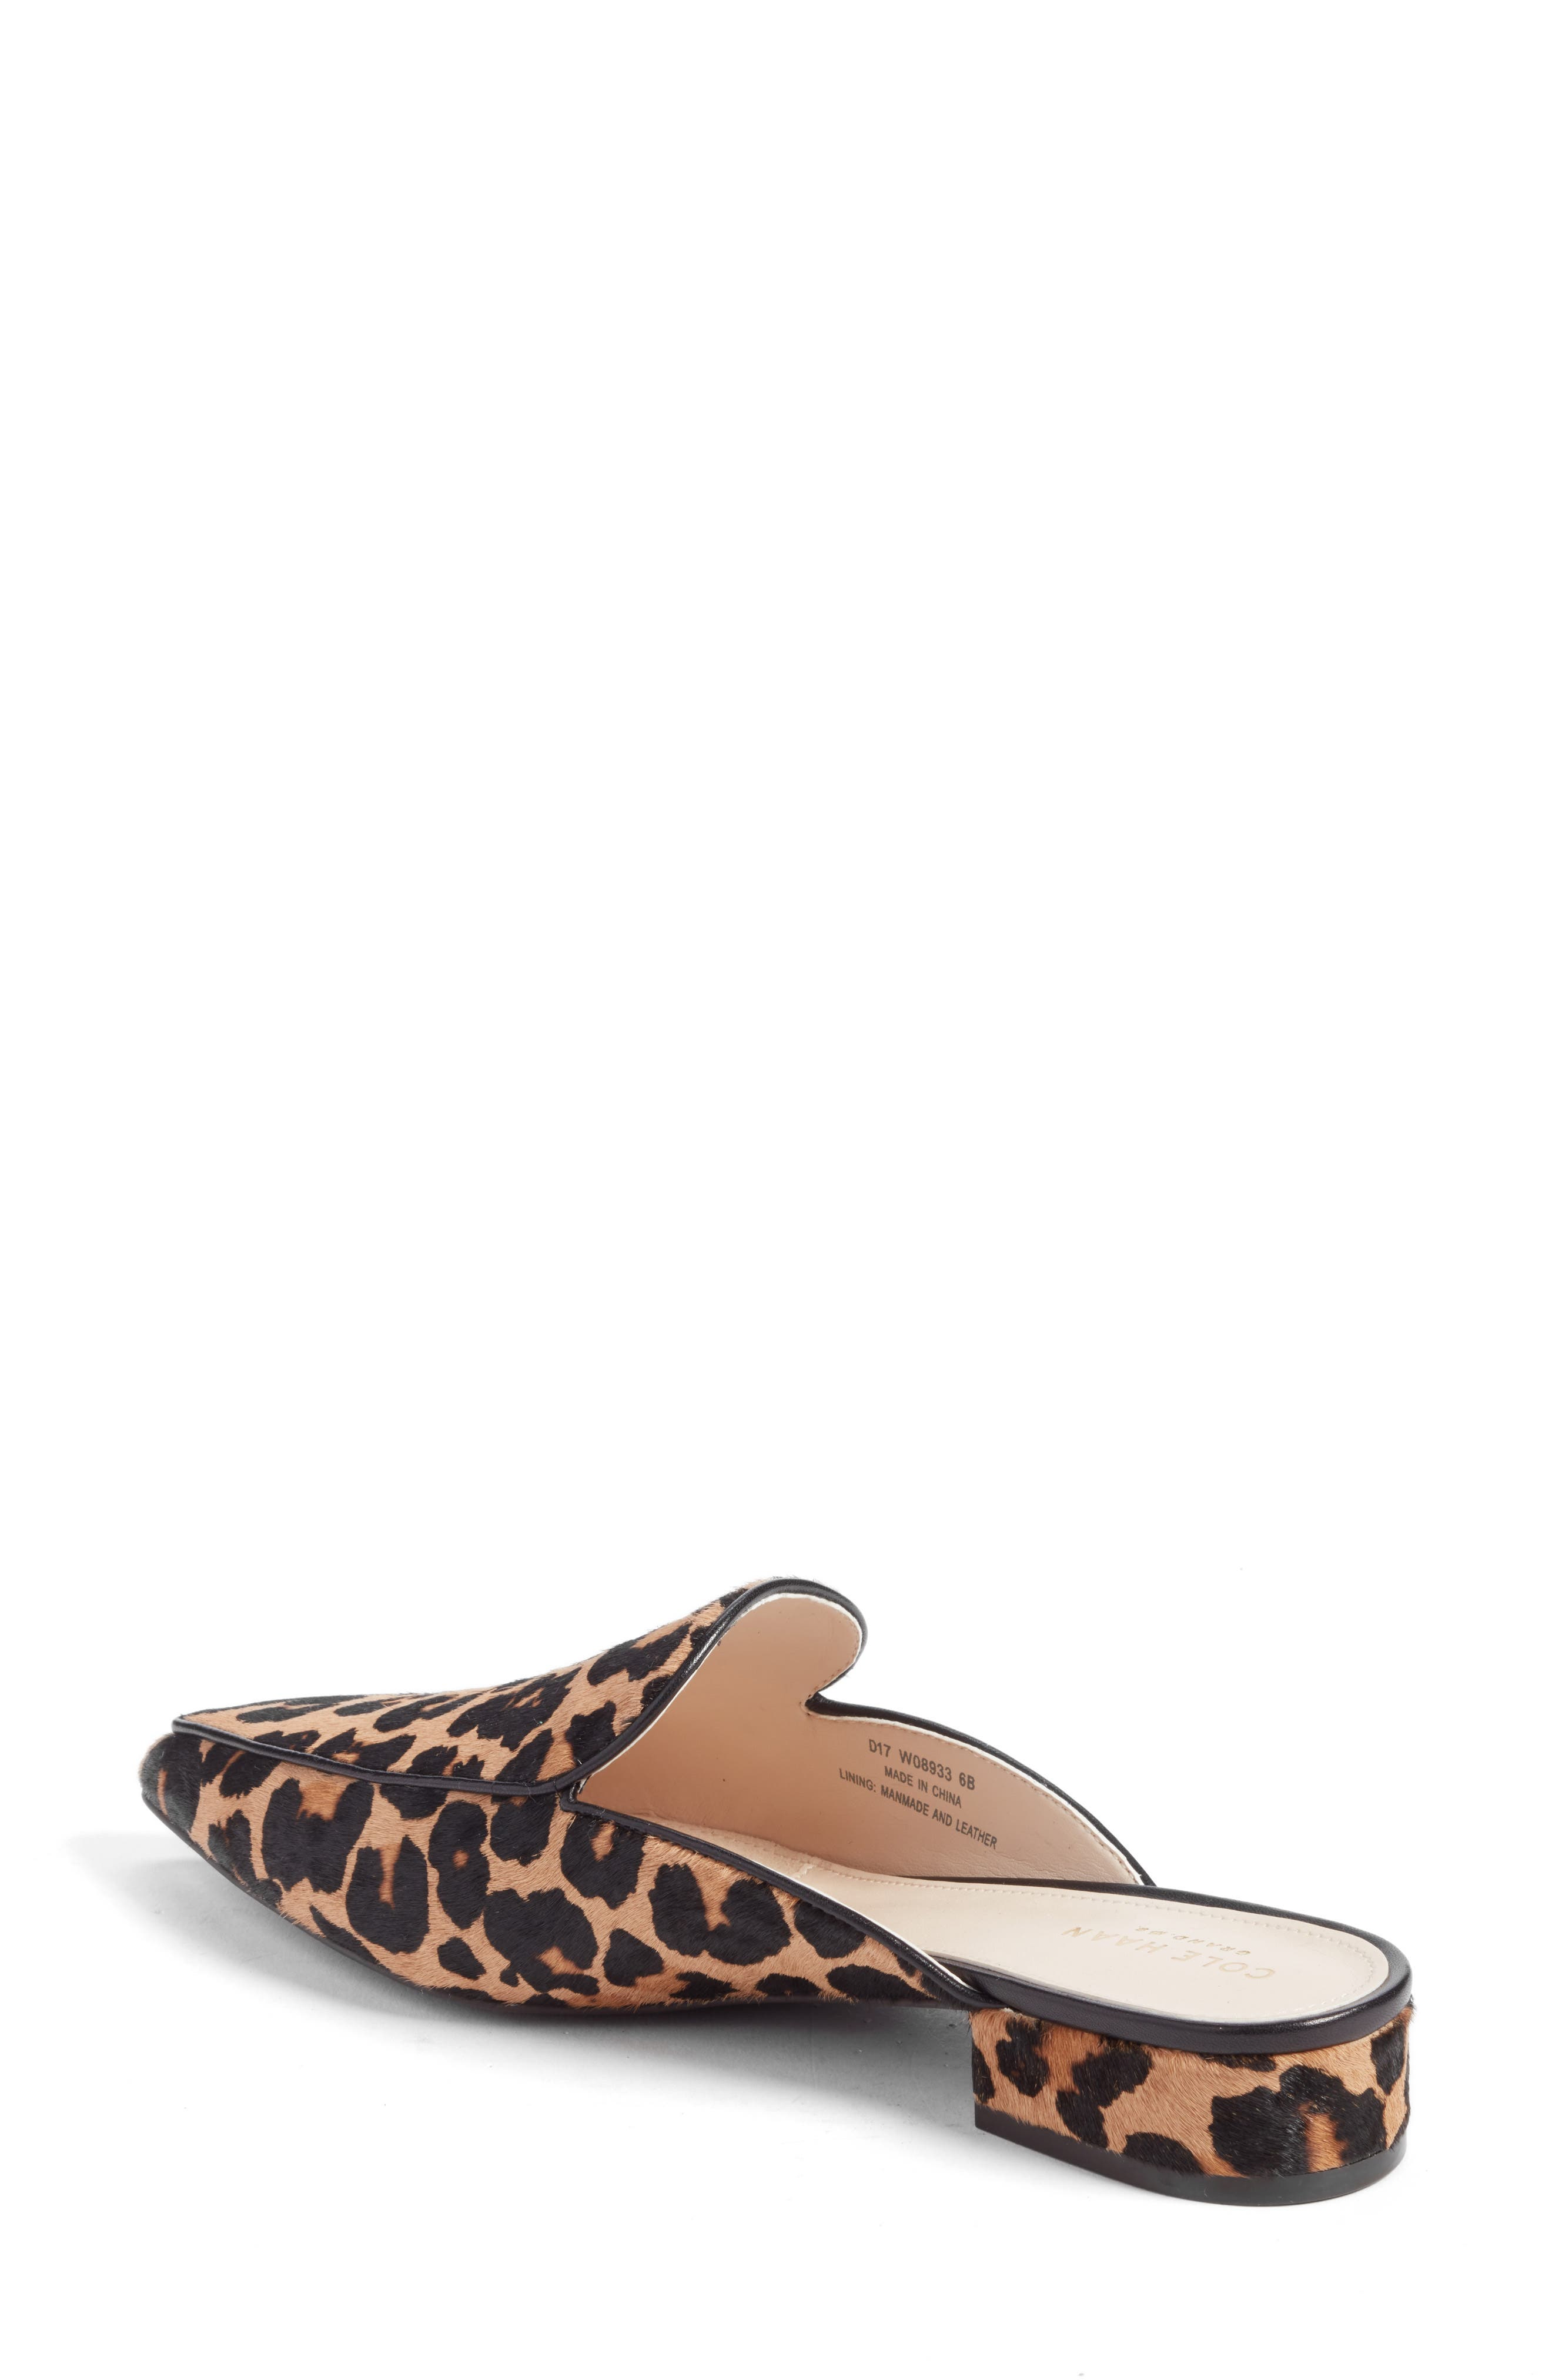 Piper Loafer Mule,                             Alternate thumbnail 2, color,                             OCELOT PRINT CALF HAIR